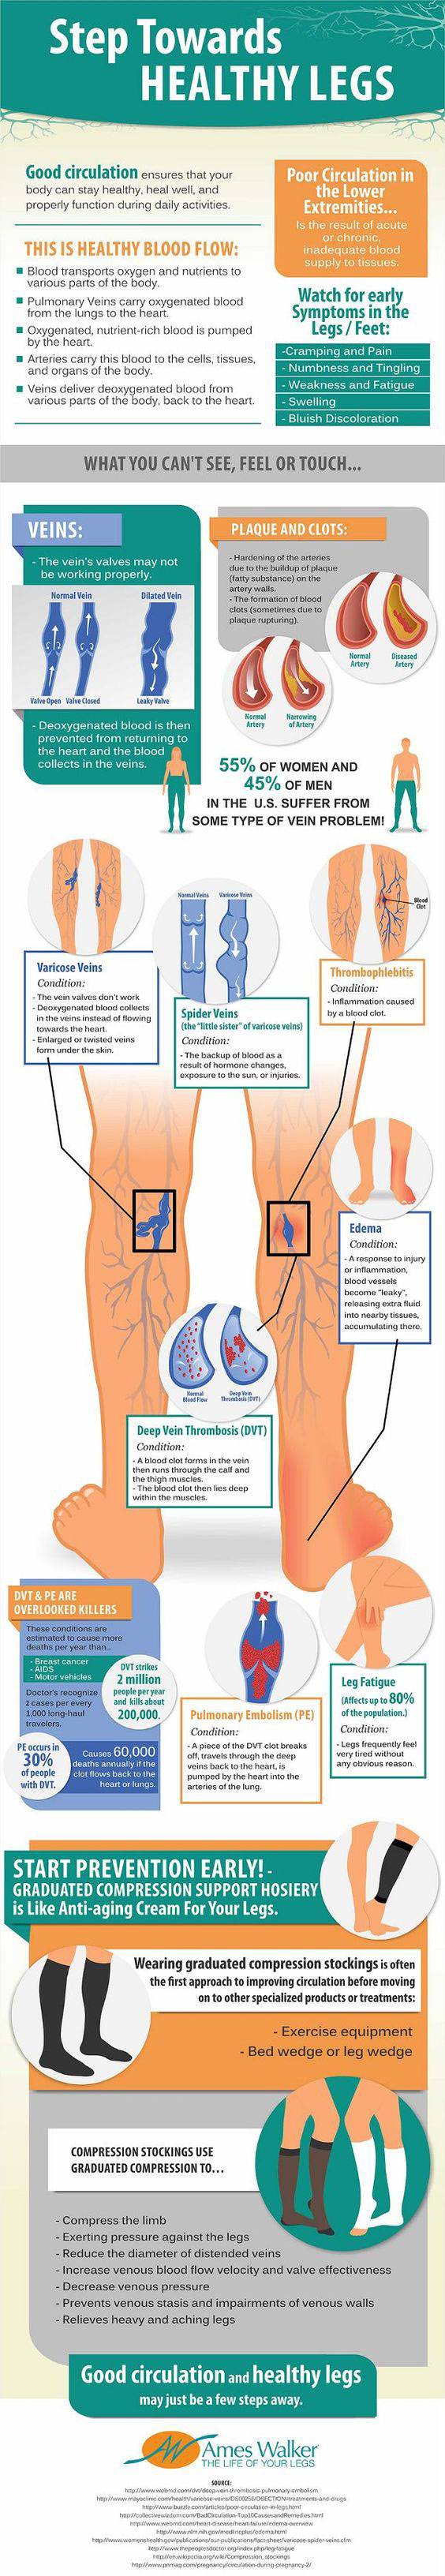 Treatments for Aching Legs and Feet